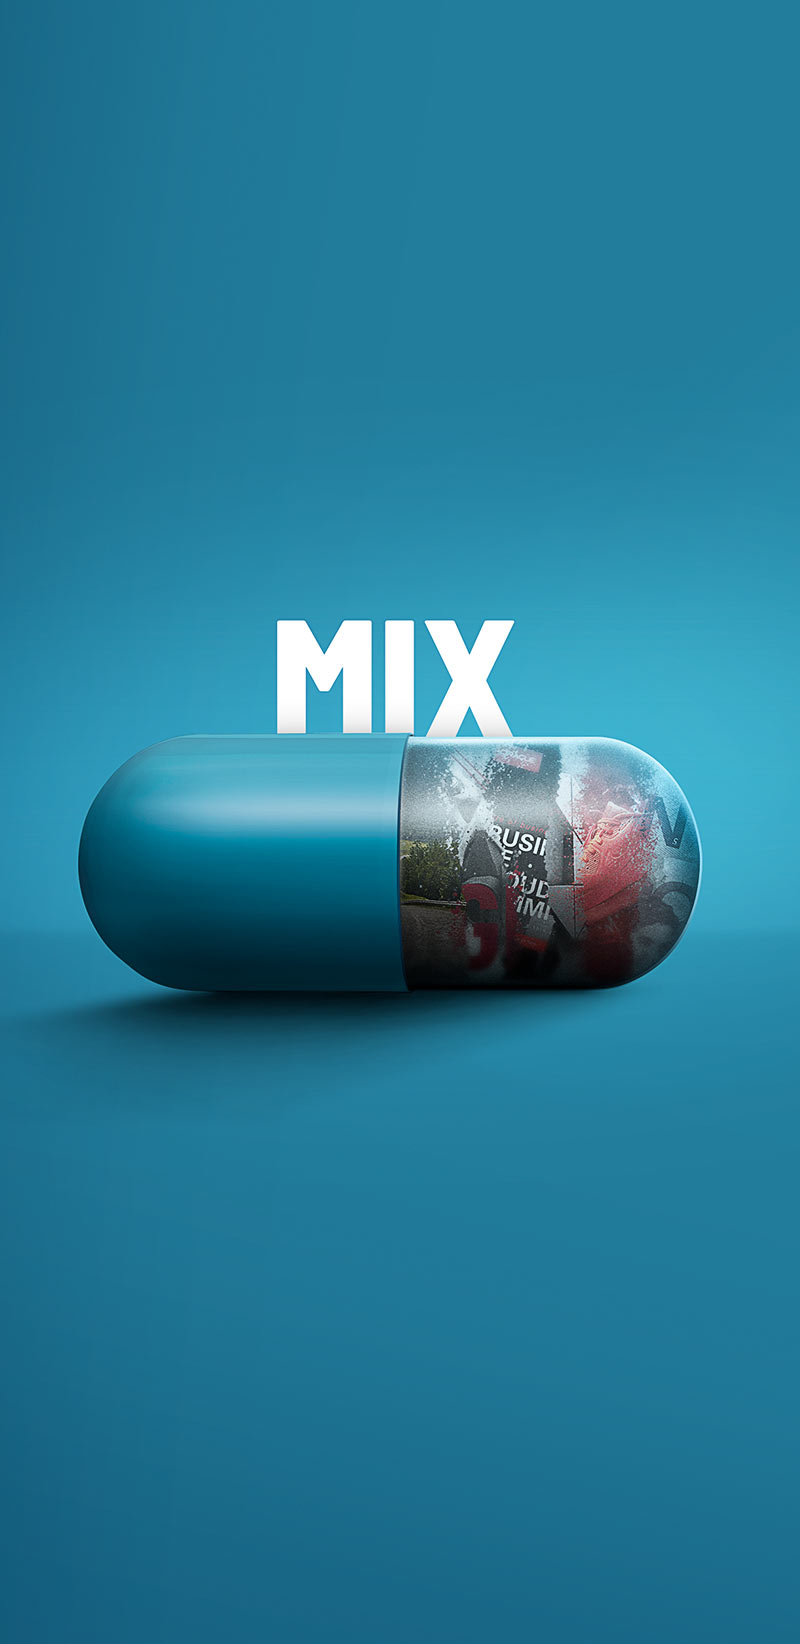 Mix_mobile